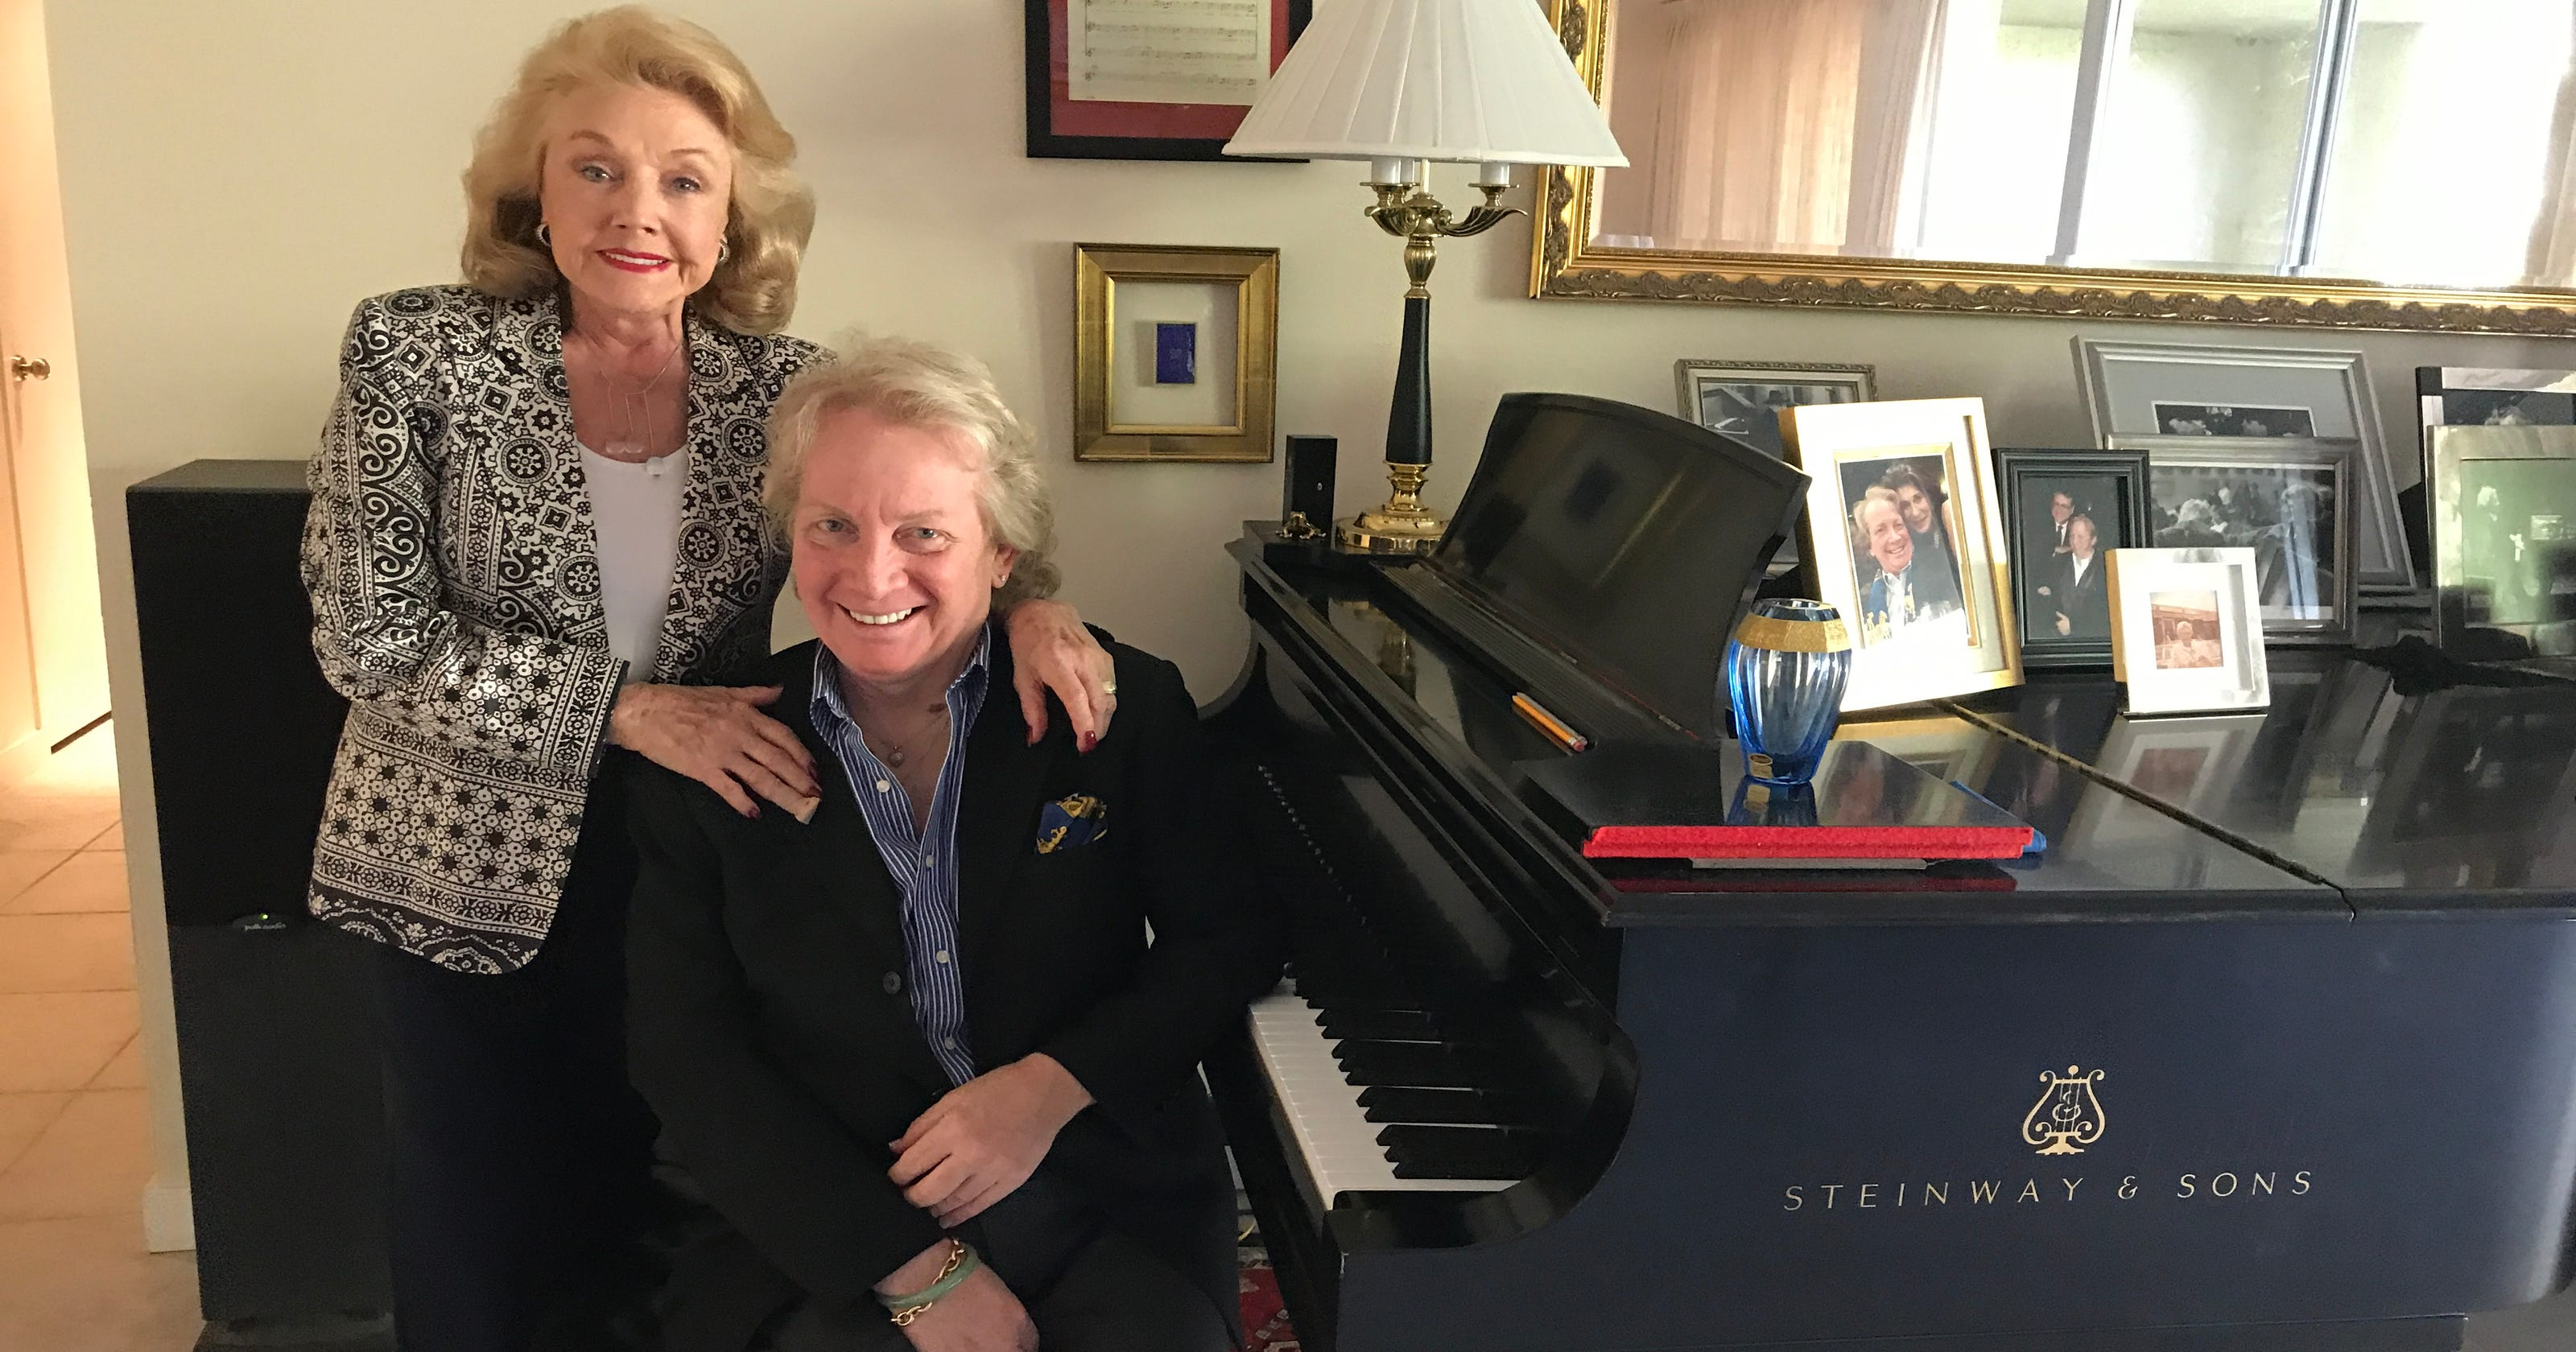 Concert pianist John Bayless, mentored by Bernstein, now performs